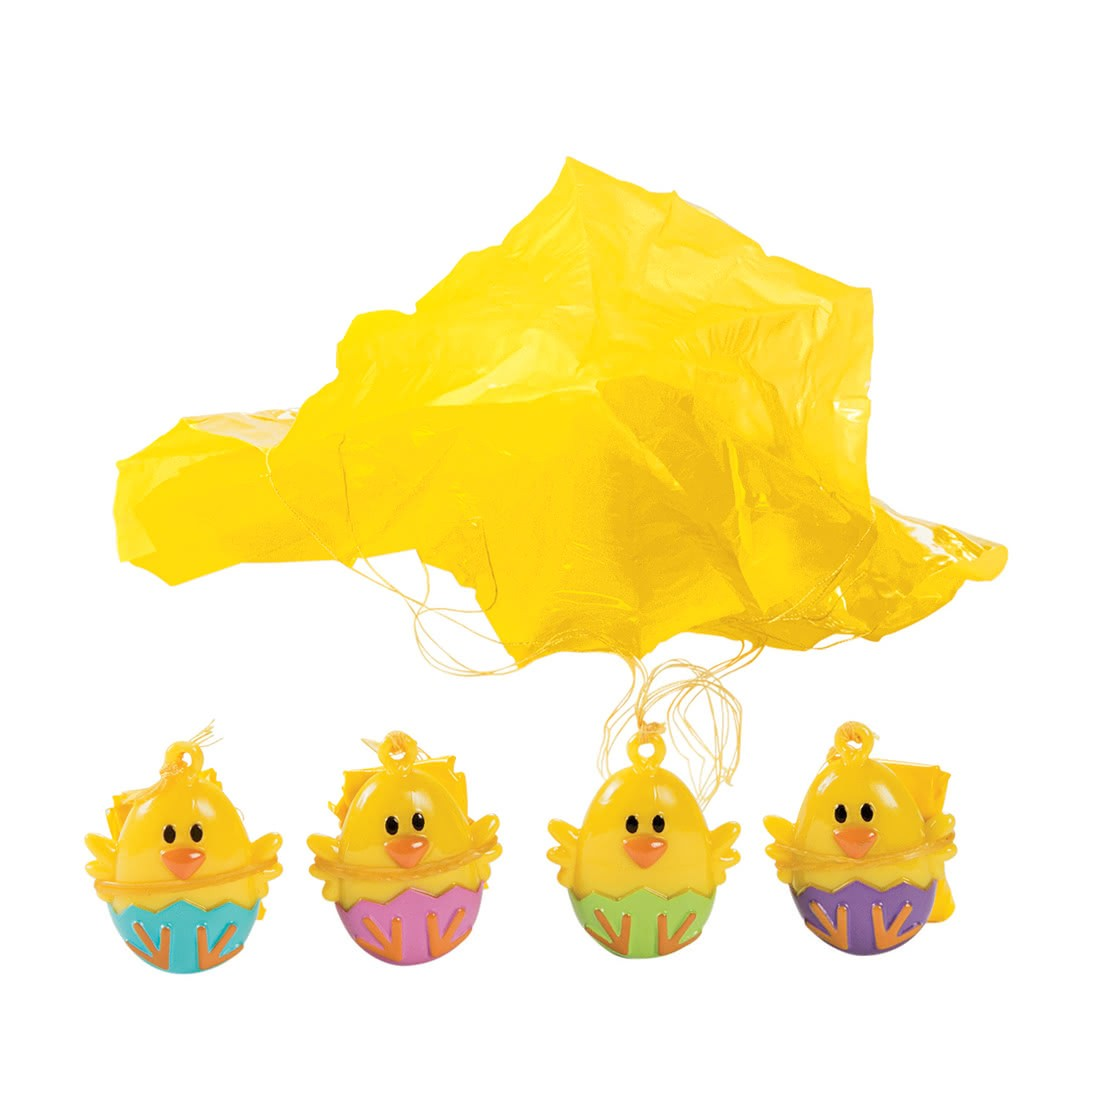 Easter Chick Paratroopers  [image]